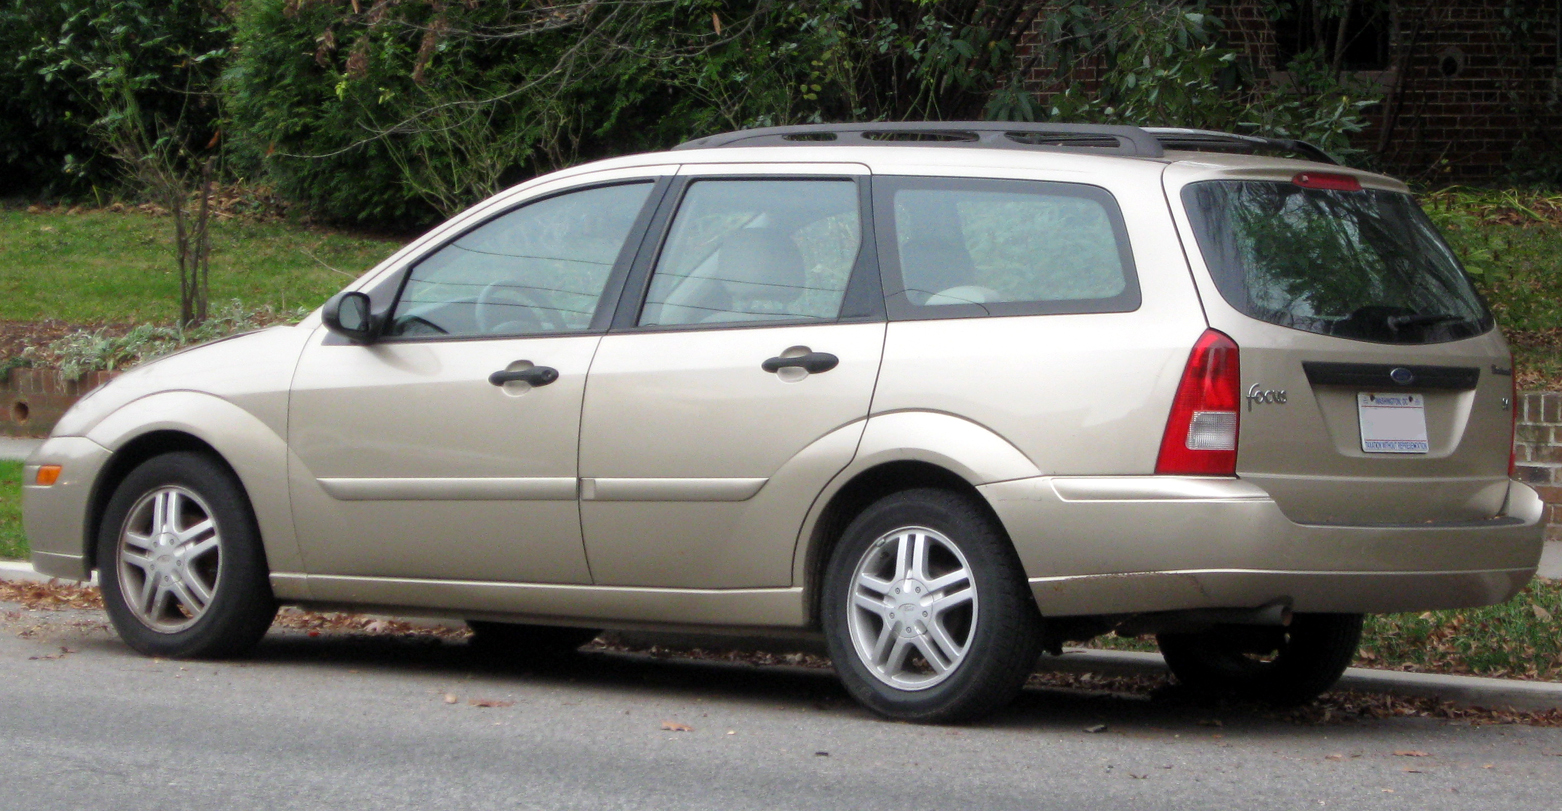 Description 2000-2004 Ford Focus SE wagon -- 11-26-2011.jpg